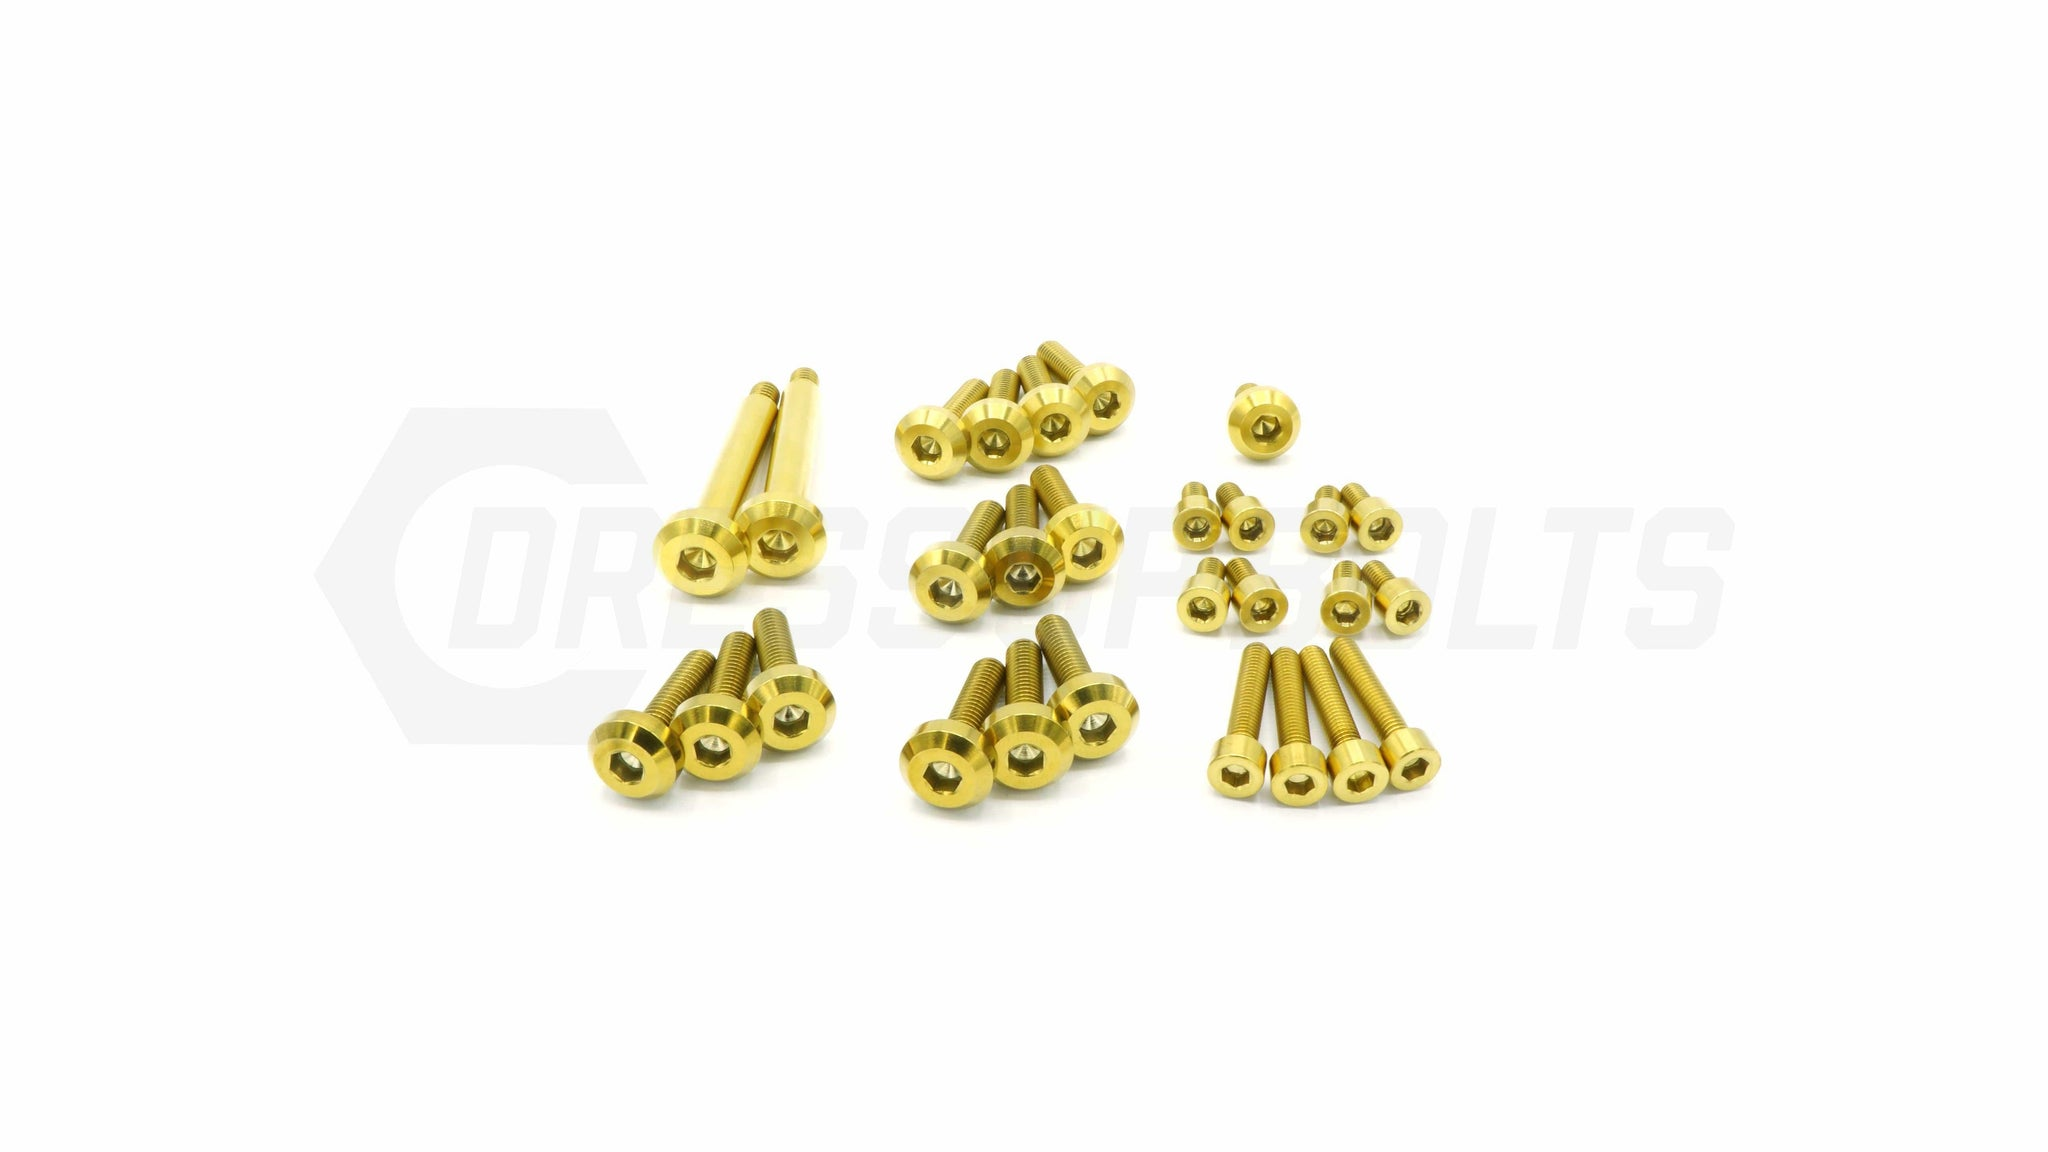 Dress Up Bolts Stage 1 Titanium Hardware Engine Kit - RB25 Engine - DressUpBolts.com